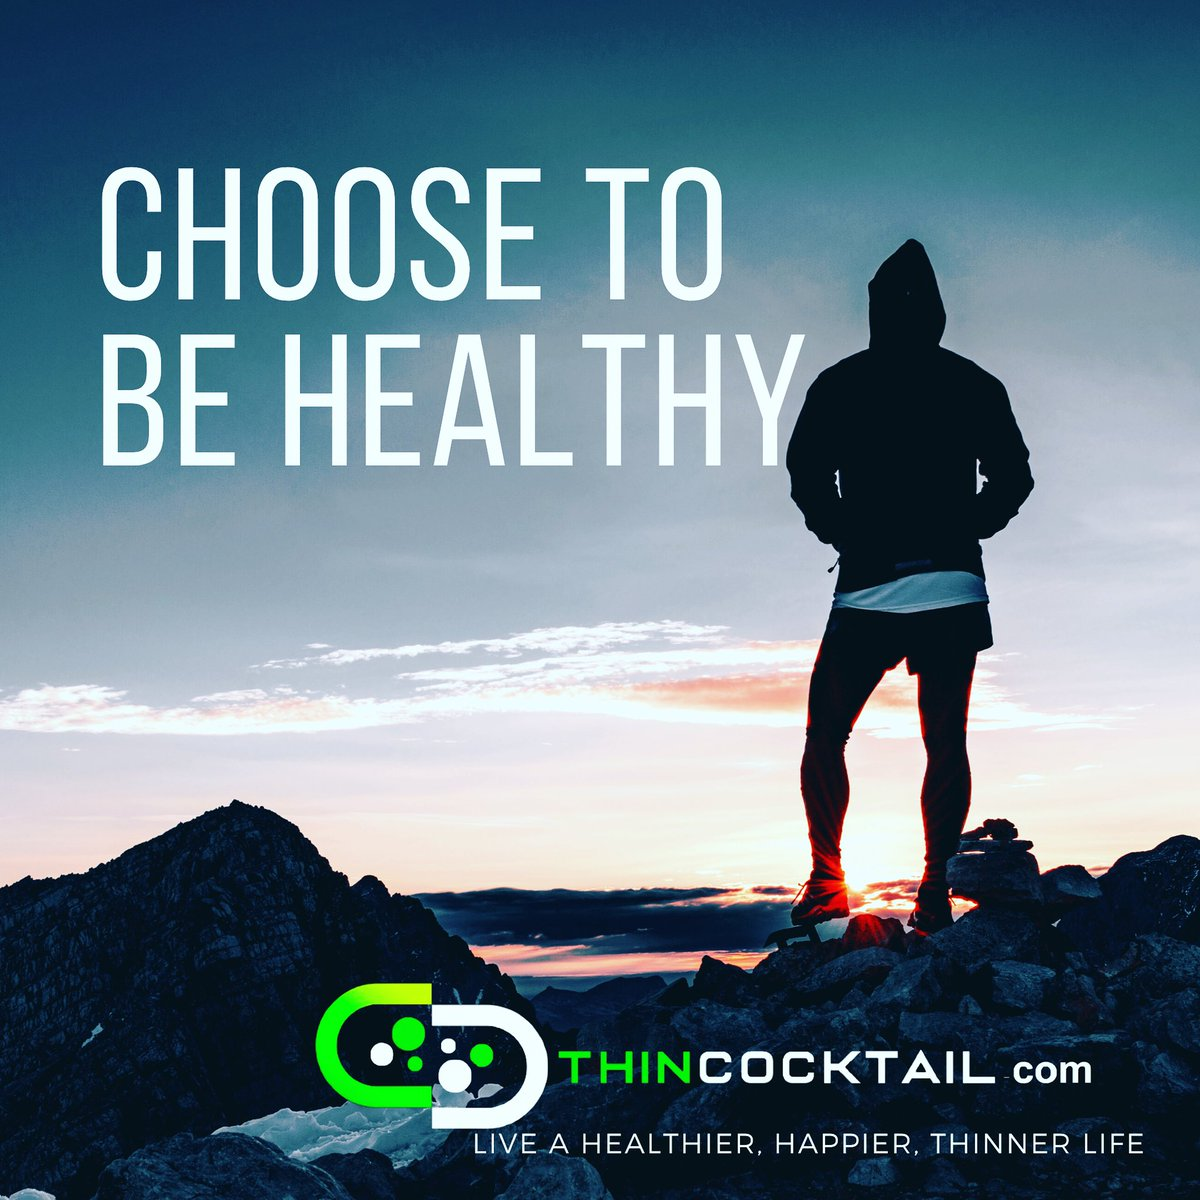 Thin Cocktail:   #healthyliving #getfit #stressreduction #naturalenergy #weightmanagement #metabolism #regulate-digestion #stressreduction #immunesystem #burnfat #buildleanmuscle #strongissexy #BeePollen #amminoacid #omega3 #thincocktailpic.twitter.com/5naAkUf3ge